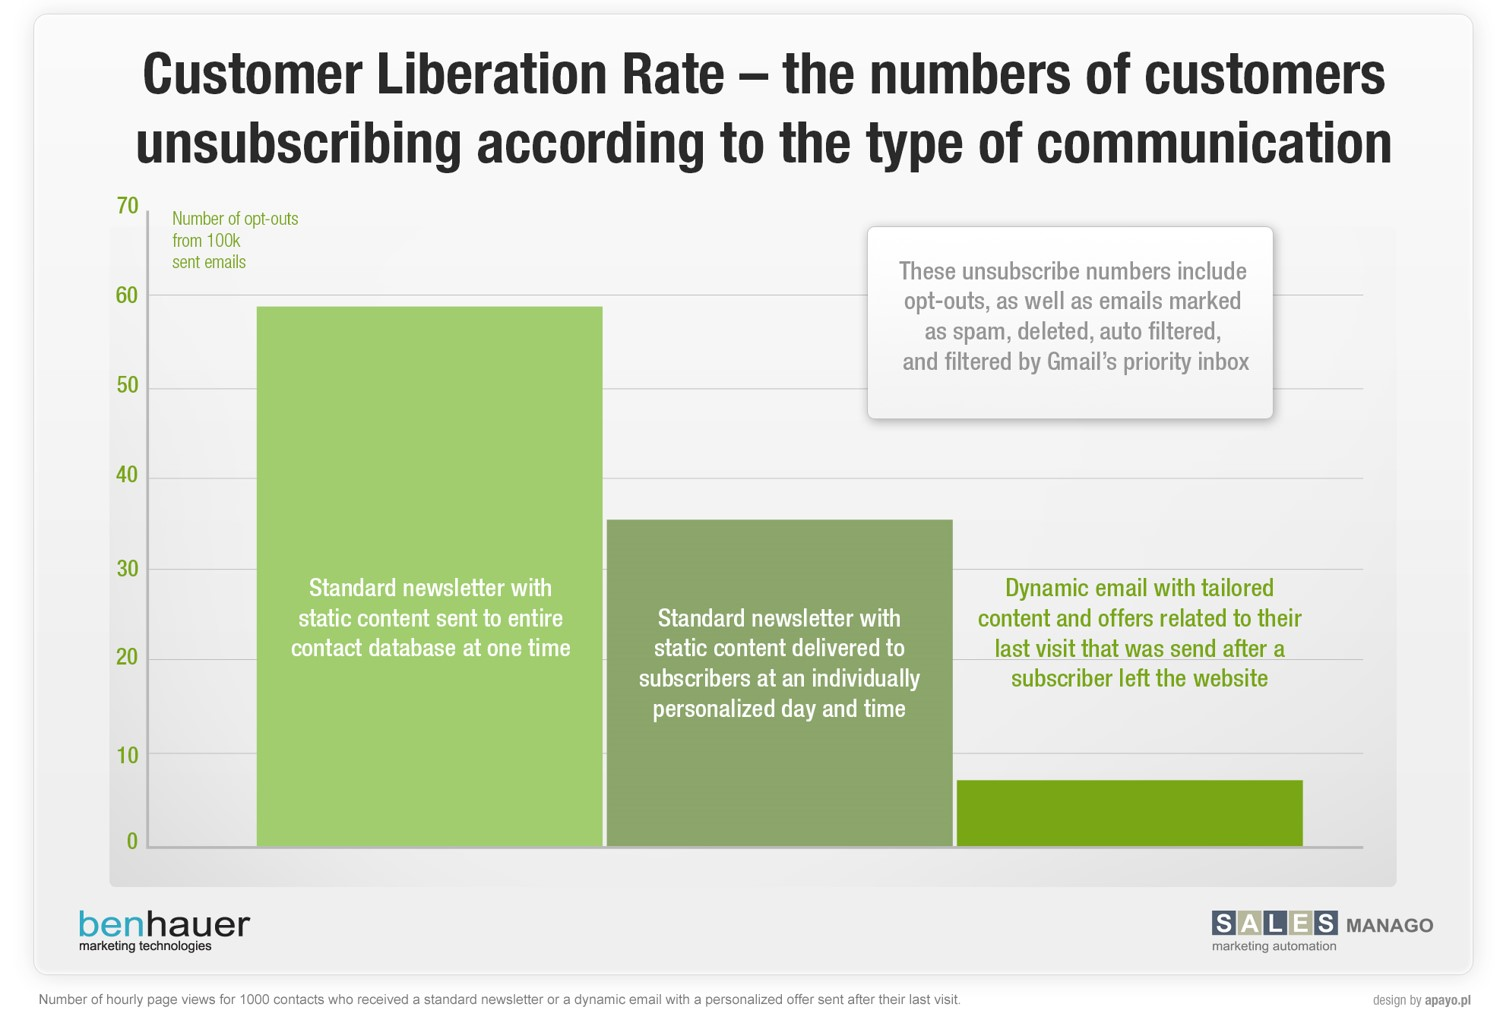 Customer Liberation rate